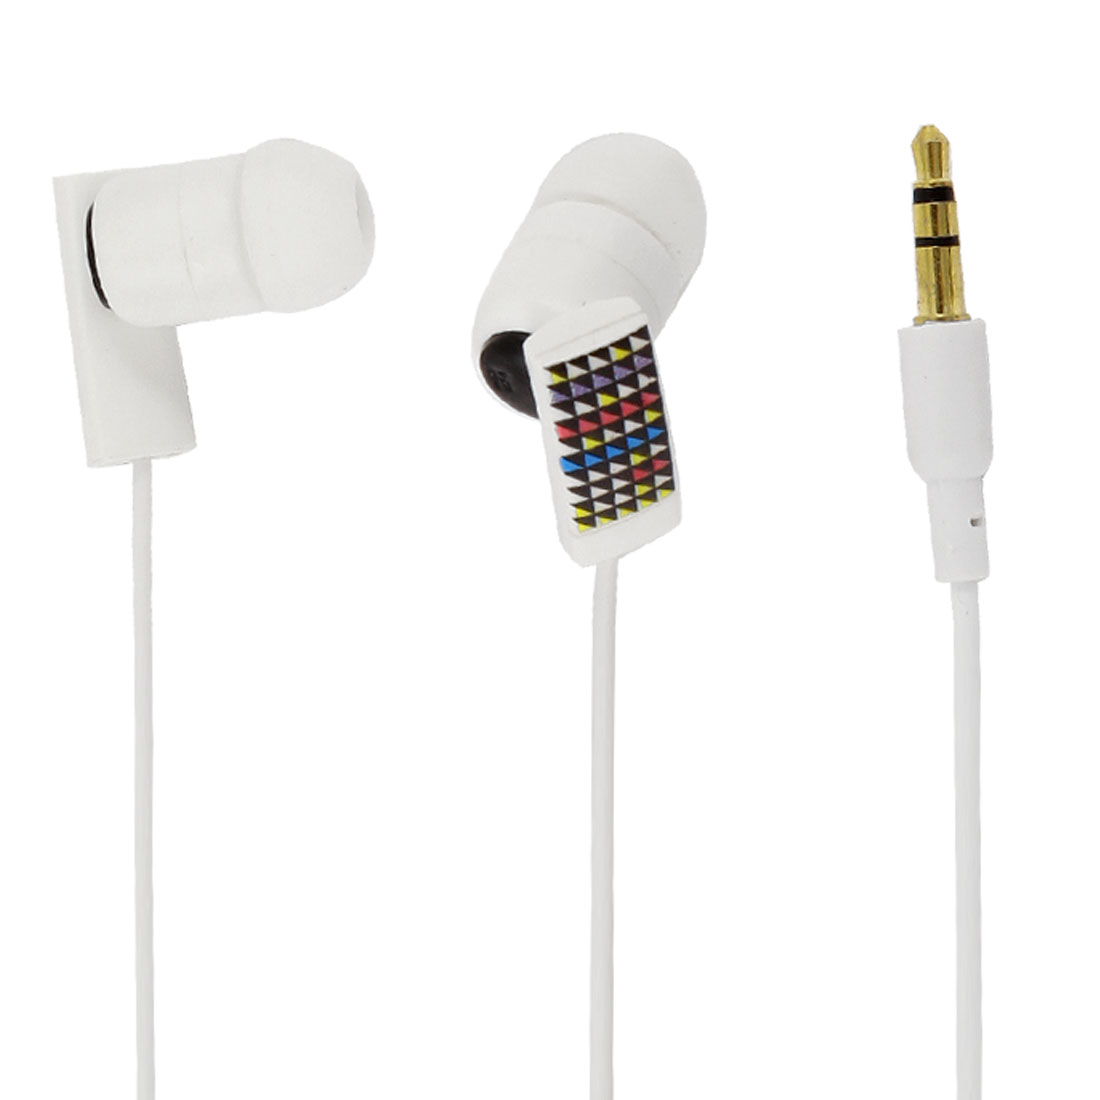 119cm 3.9ft Cable 3.5mm In Ear Headset Earphone White for MP4 PC Computer